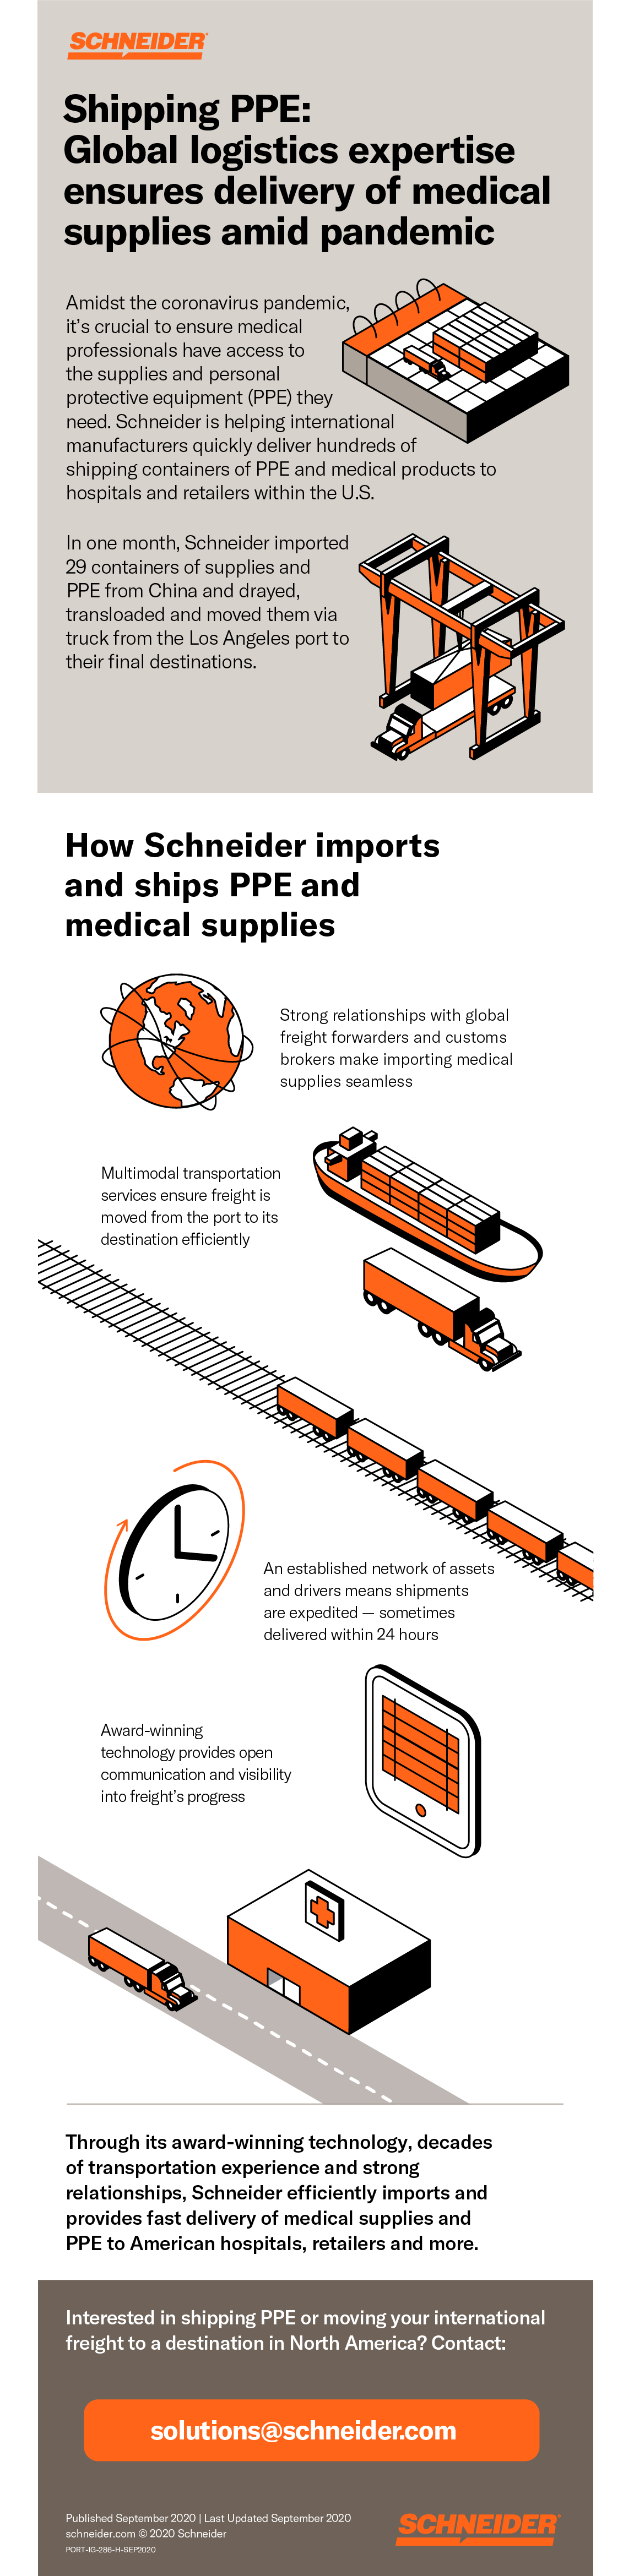 Infographic that shows how Schneider's global expertise allowed them to import and ship PPE and other medical supplies within the U.S.